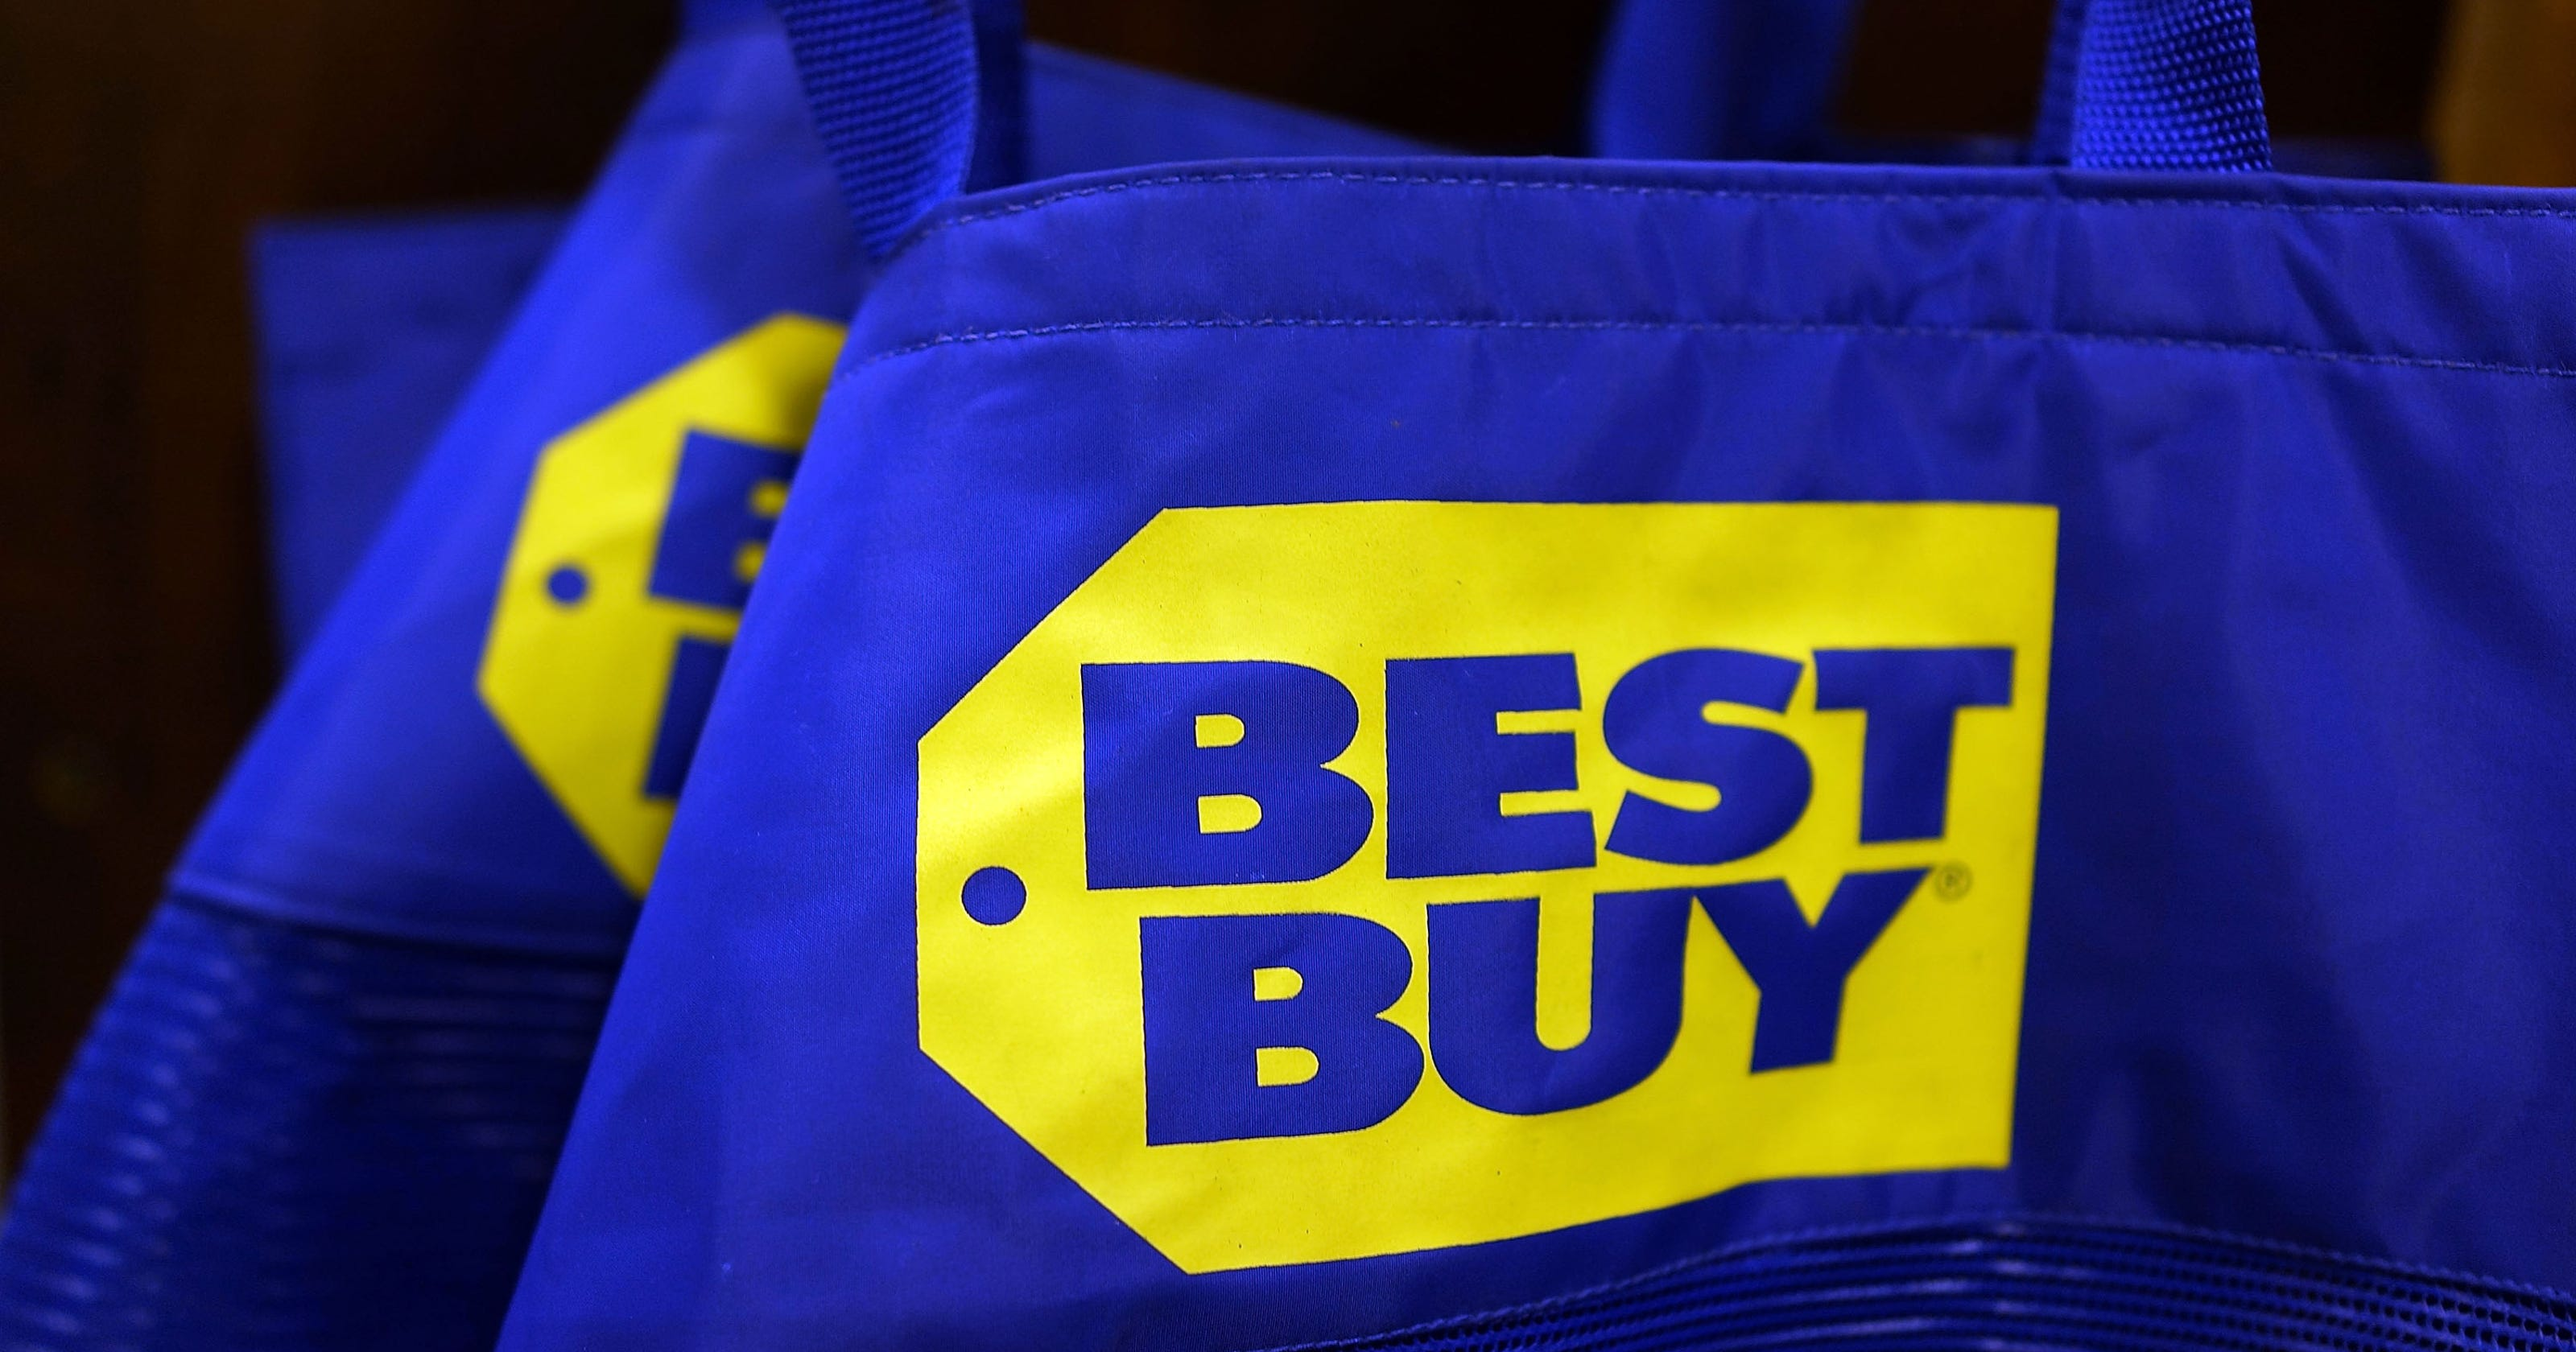 best buy storms black friday with deep discounts on tvs - Best Buy Christmas Hours 2014